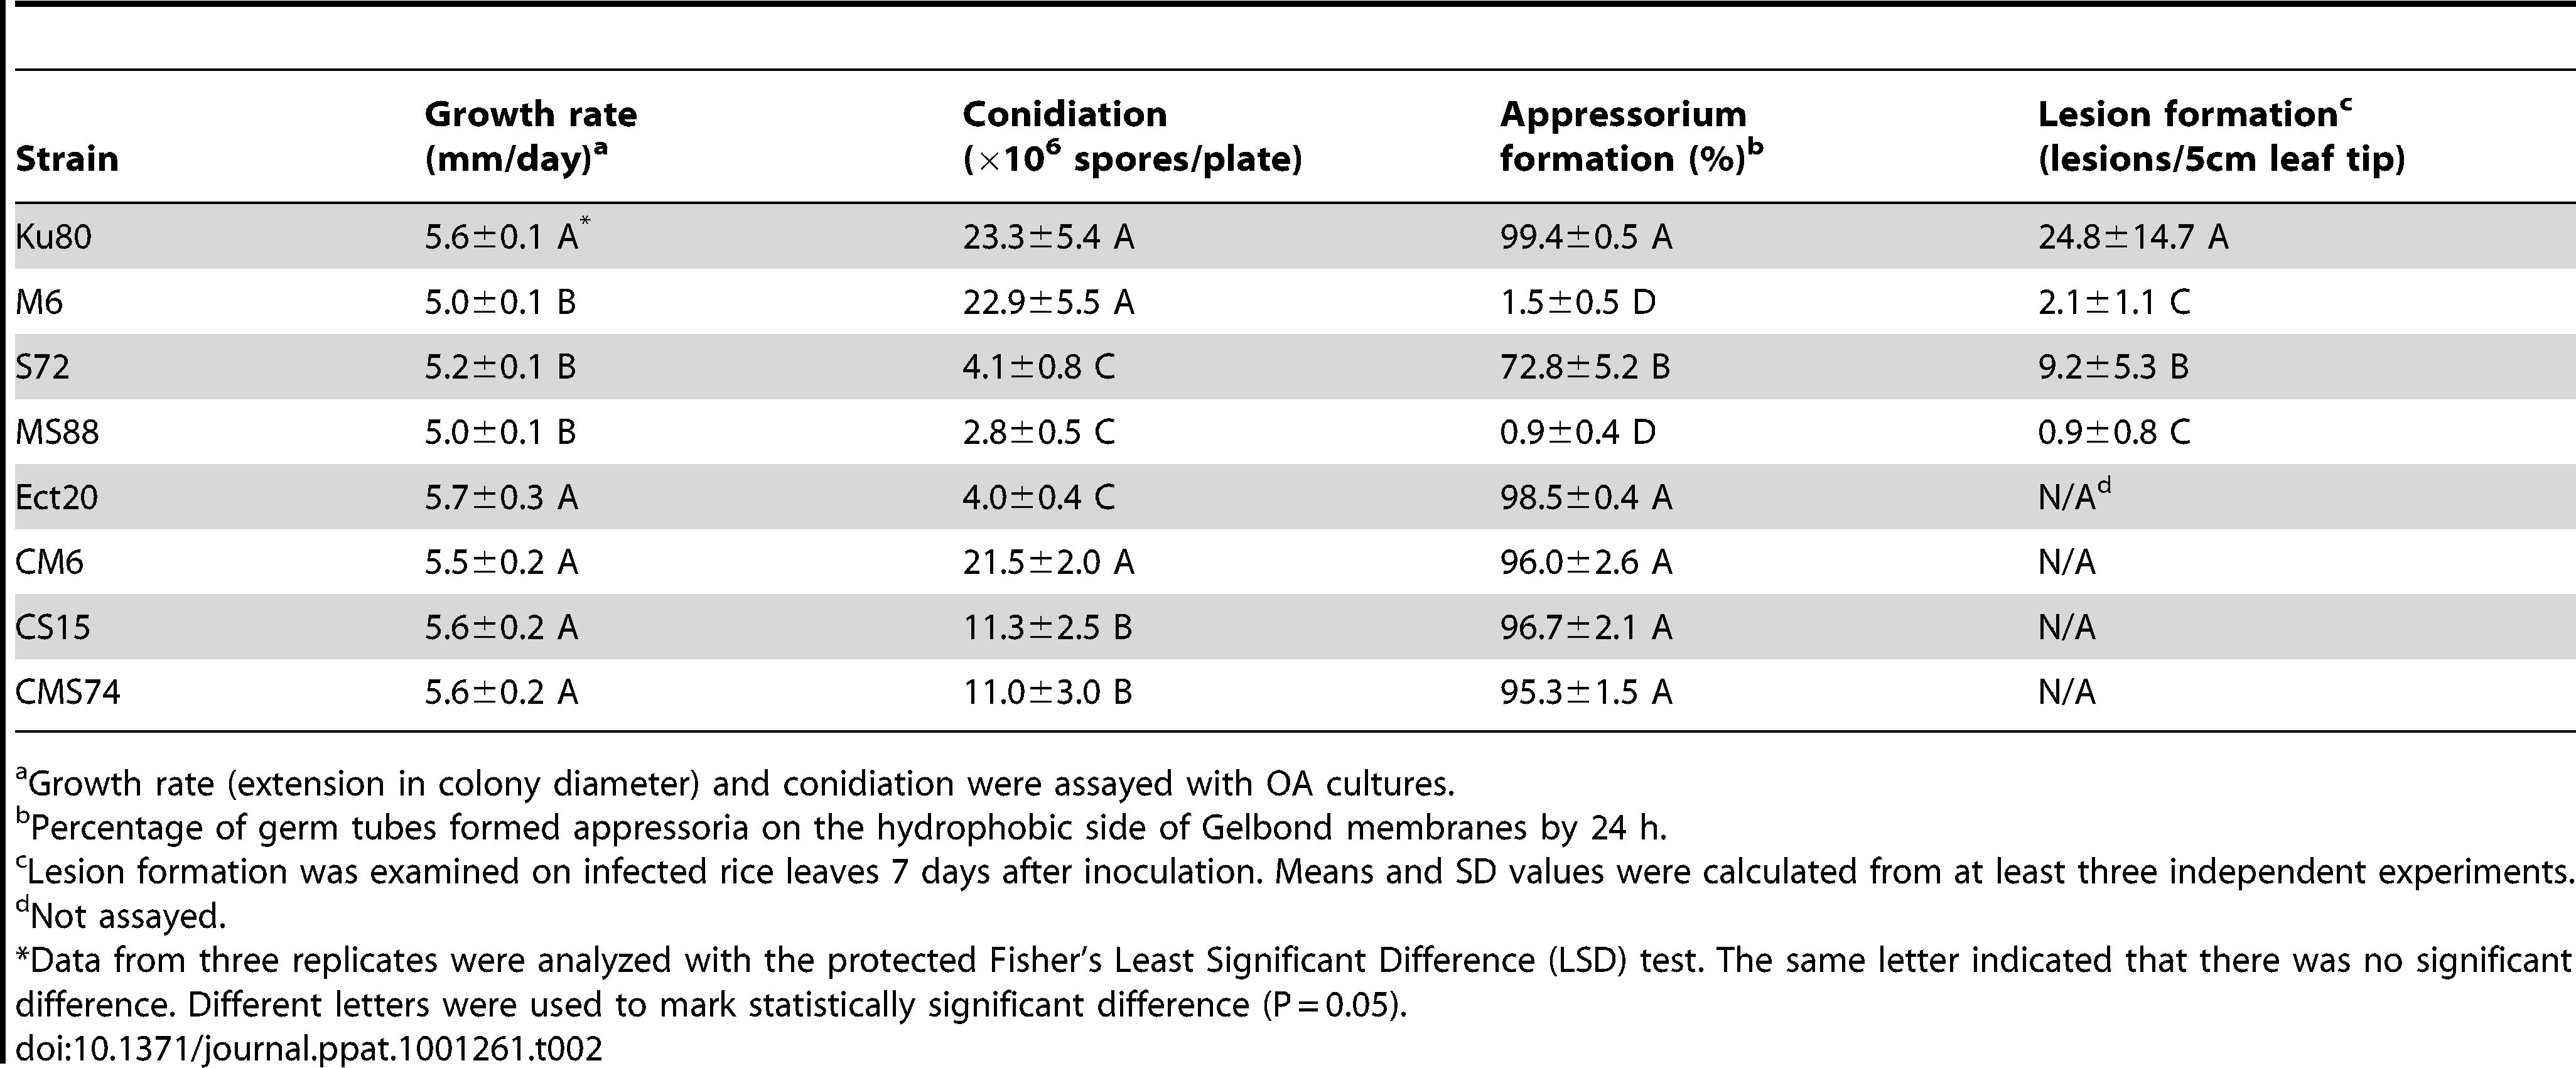 Phenotype characterization of the mutants generated in this study.